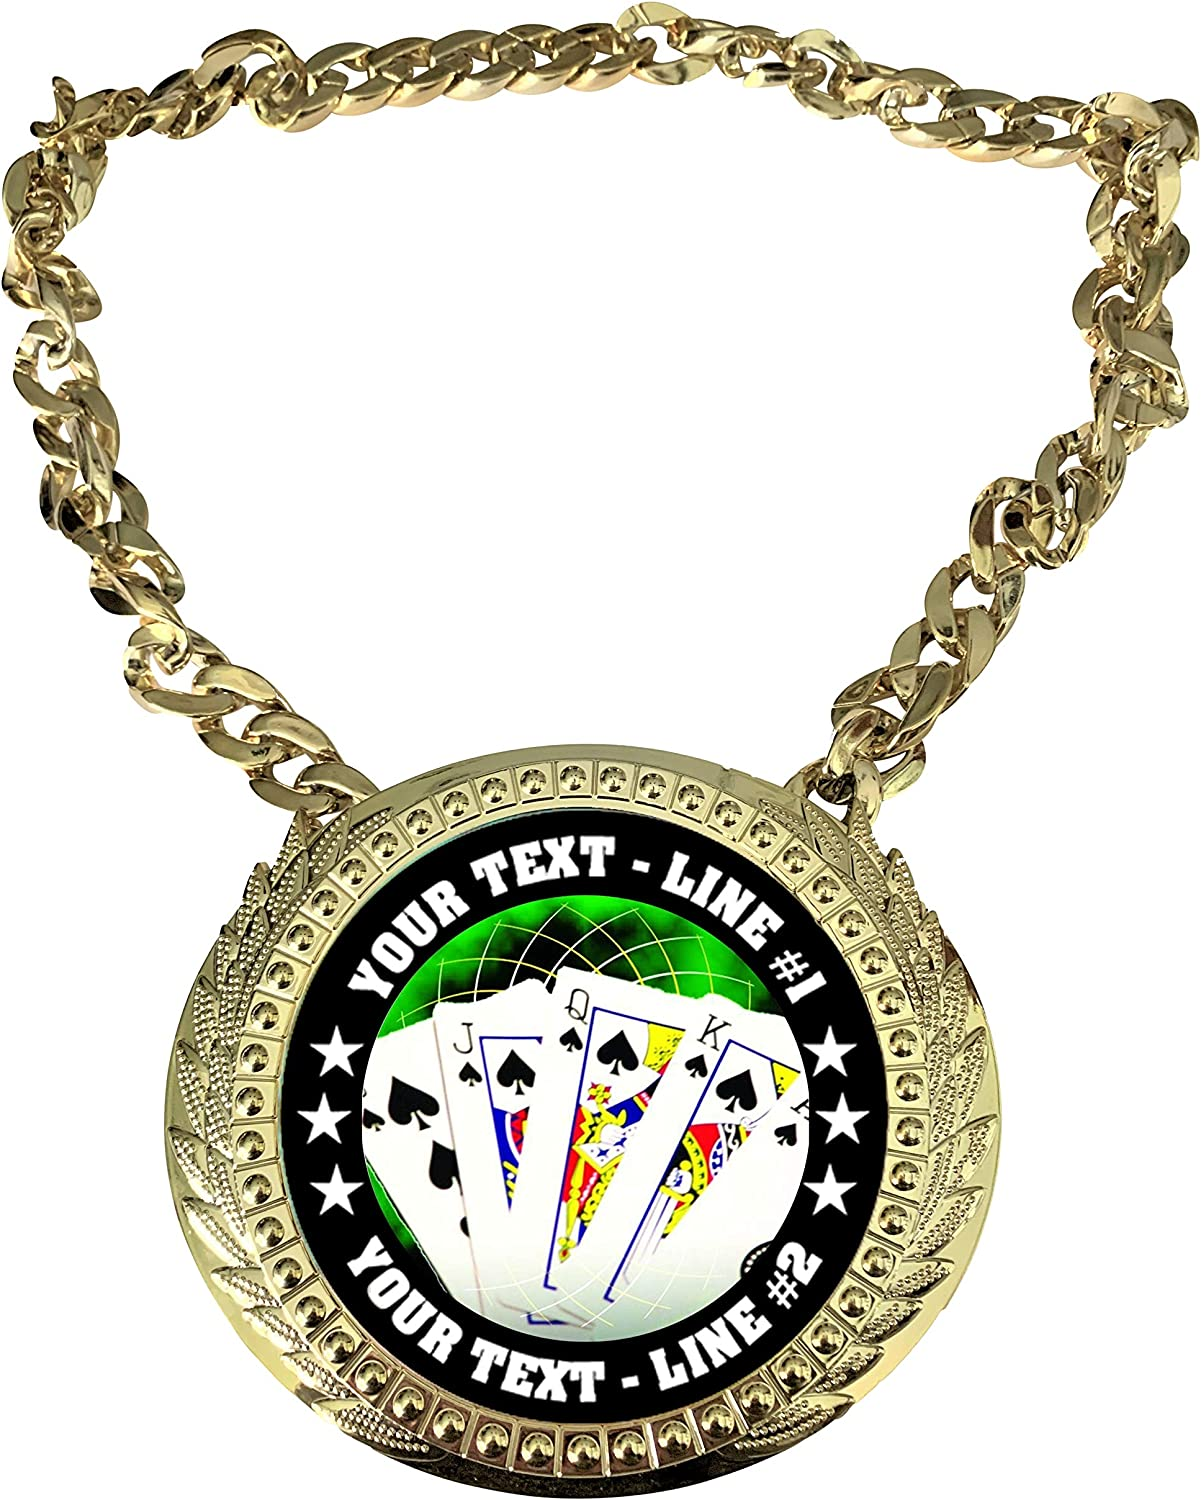 Express Medals Custom Overseas parallel import regular item Poker Quality inspection Holdem Champ Trophy with Chain Stud